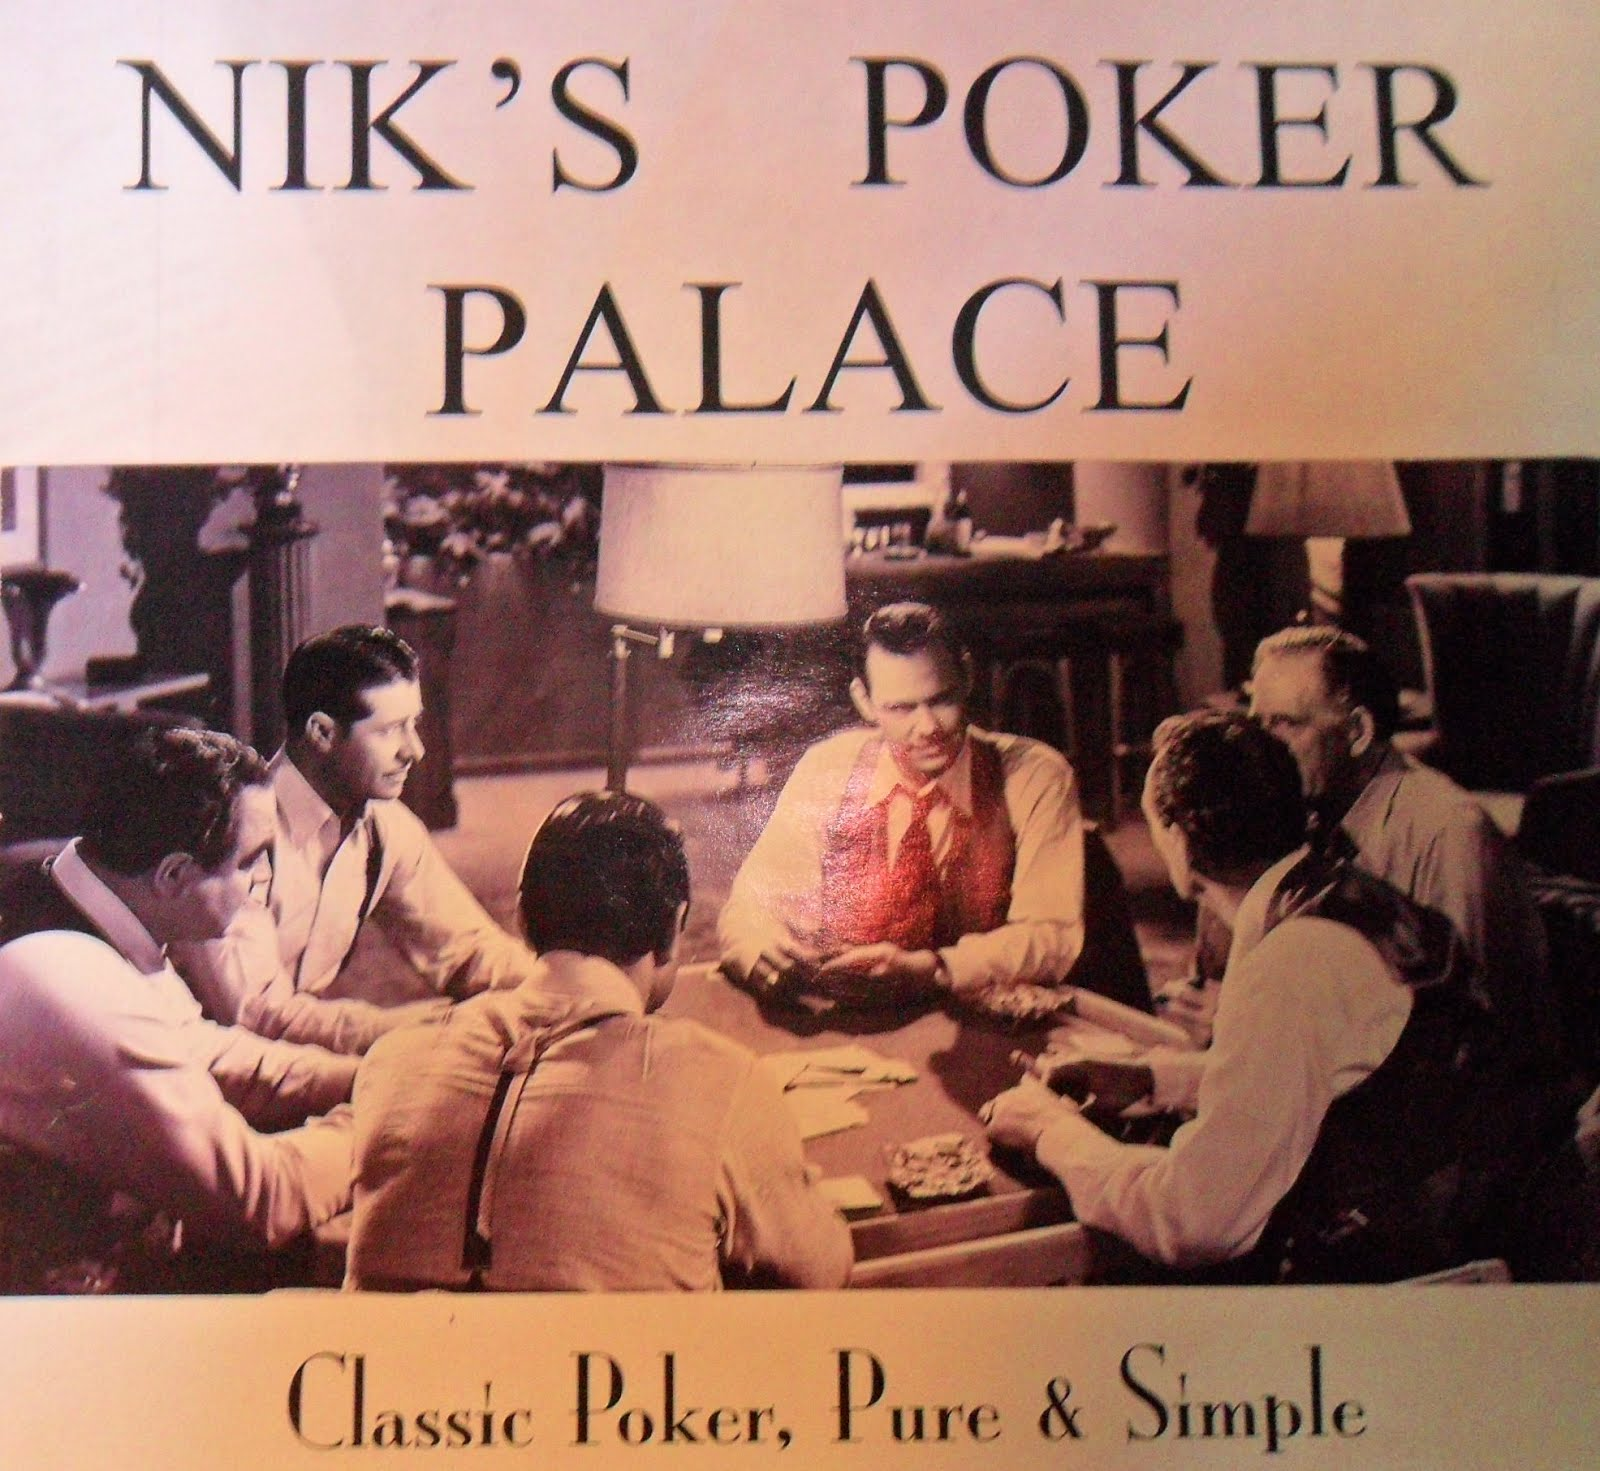 Welcome to Nik's Poker Palace!